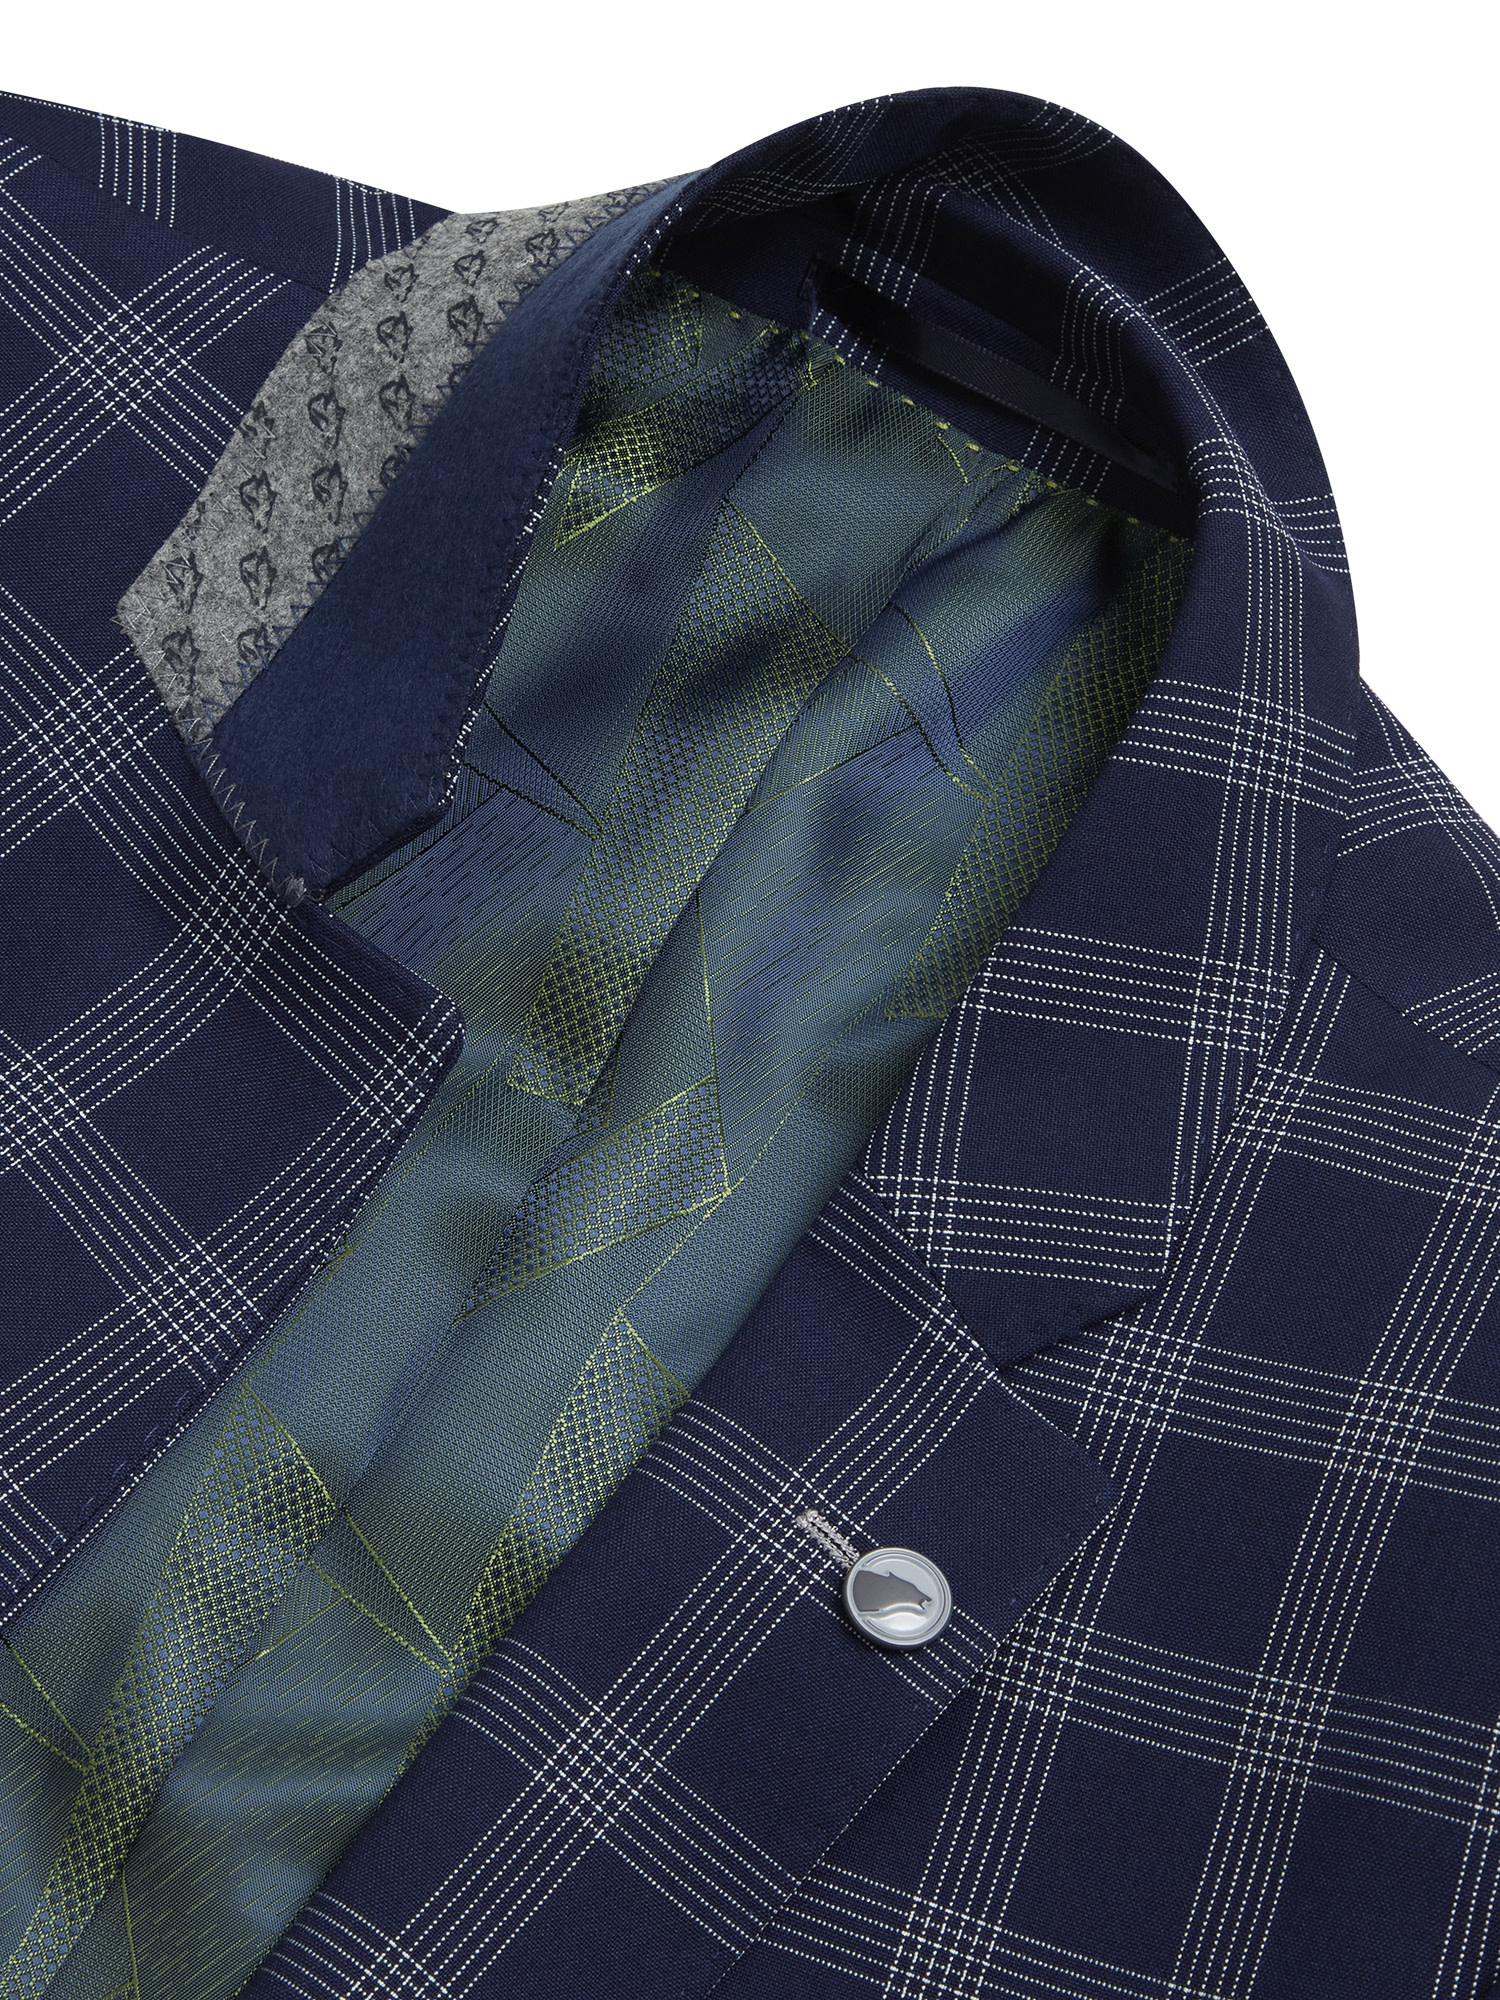 Remus Uomo Navy Blue 3 piece suit with check jacket